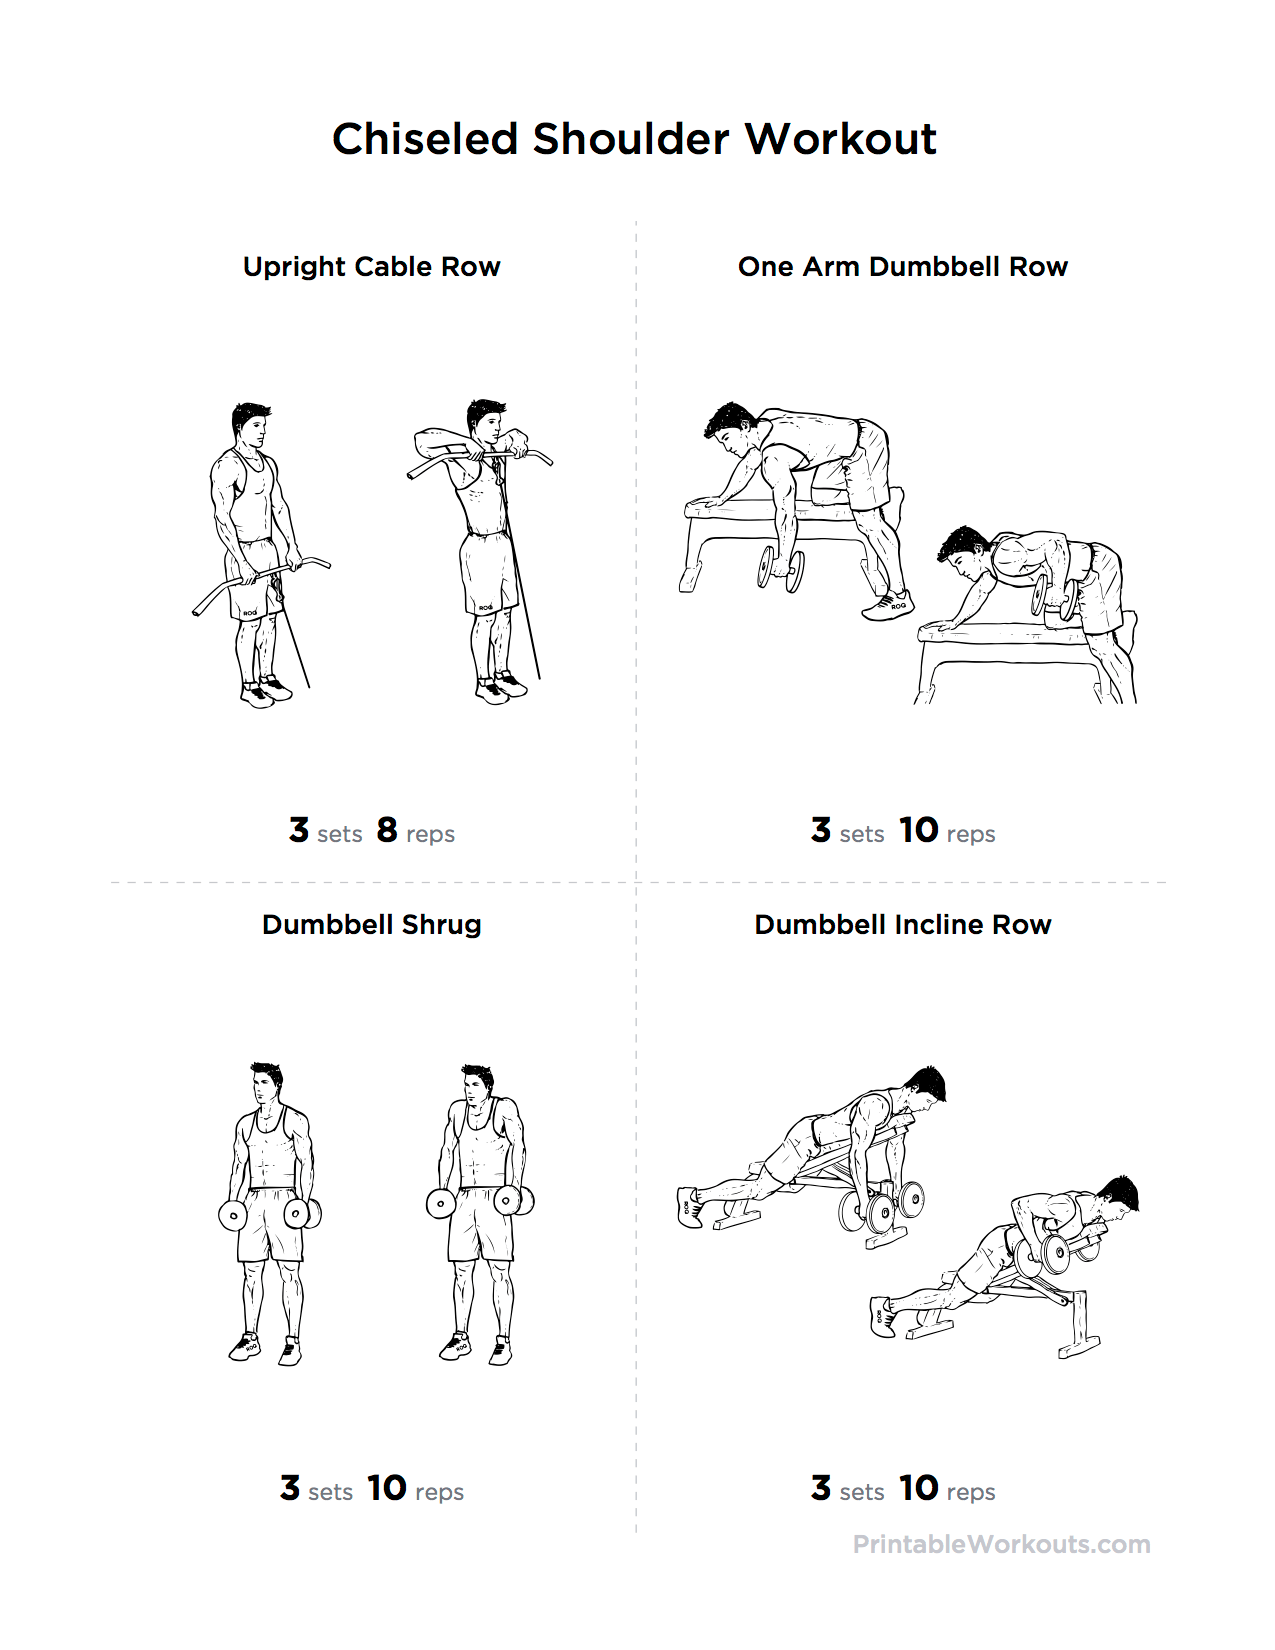 Printable Chiseled Shoulder Workout Create Free Custom Printable Workouts At Workoutlabs